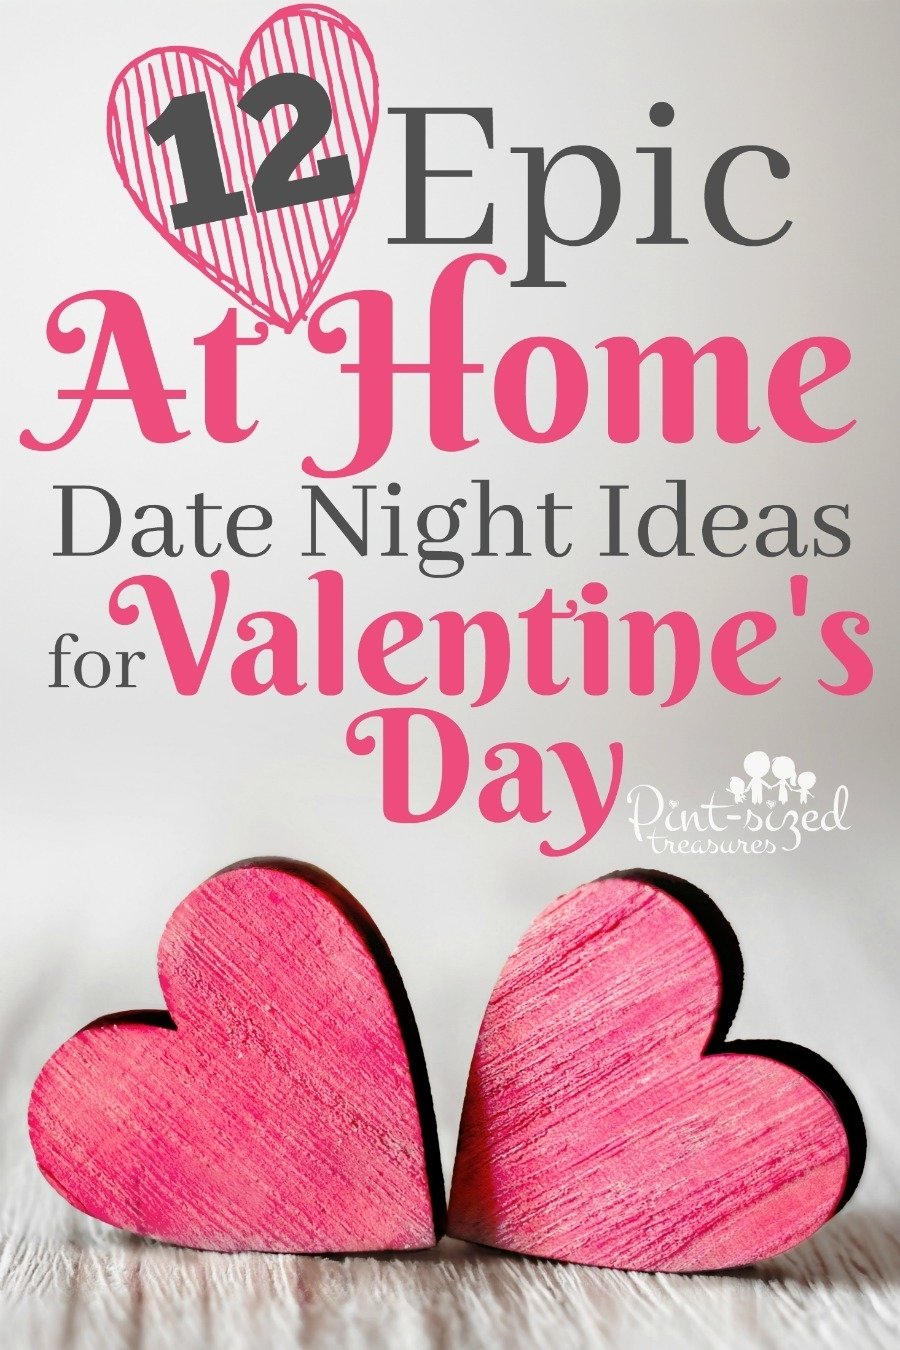 10 Attractive Cheap Valentines Day Date Ideas 12 epic at home date night ideas for valentines day c2b7 pint sized 5 2020